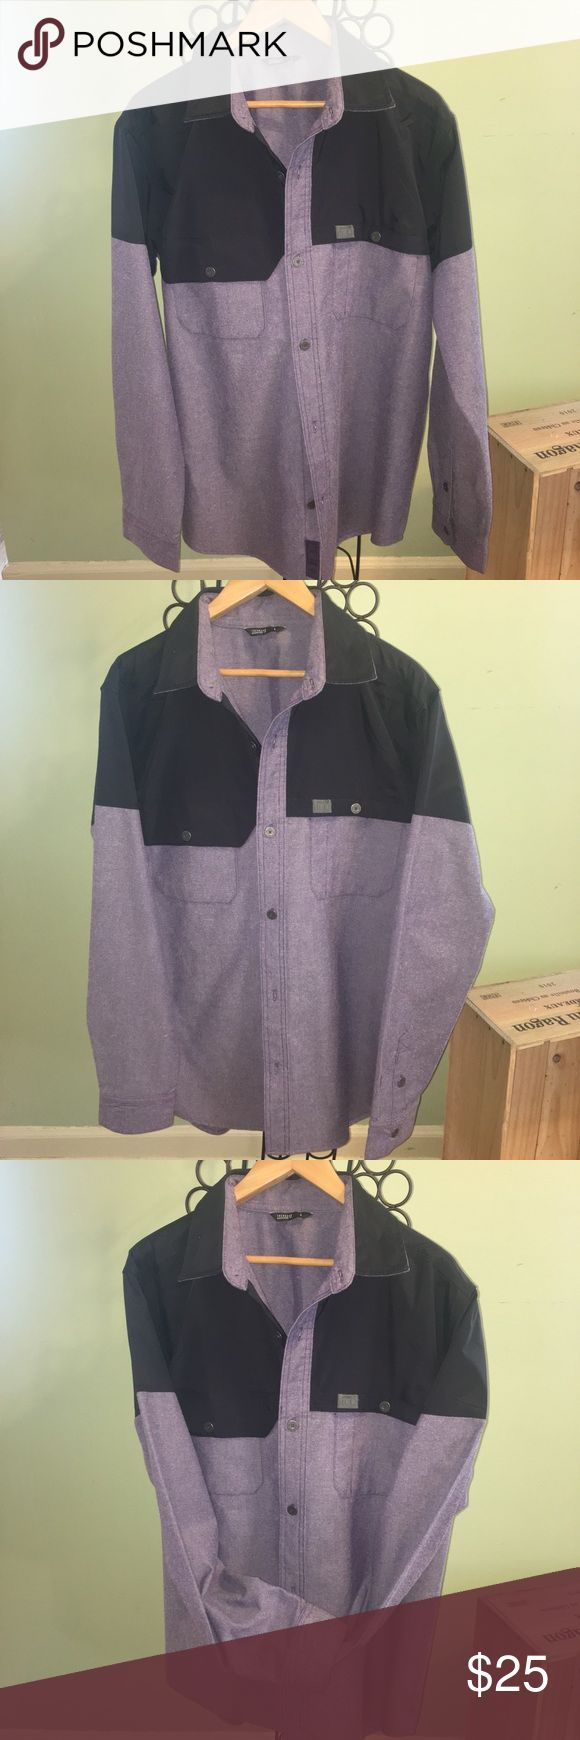 Trew Gear Backcountry Button Up - Sz Large 💘❤️VALENTINES SALE❤️💘This shirt is in GUC with no visible signs of flaws, only normal pre-owned wear. No holes, rips or stains. Trew Backcountry Button Up is the latest addition to a line of water-resistant snow apparel that travels from the city to the mountain with ease. The shirt is styled as a classic heritage work shirt, but the chest and shoulders are protected with a nylon taslan shell with a water-repellent coating. Polyester-and-wool…